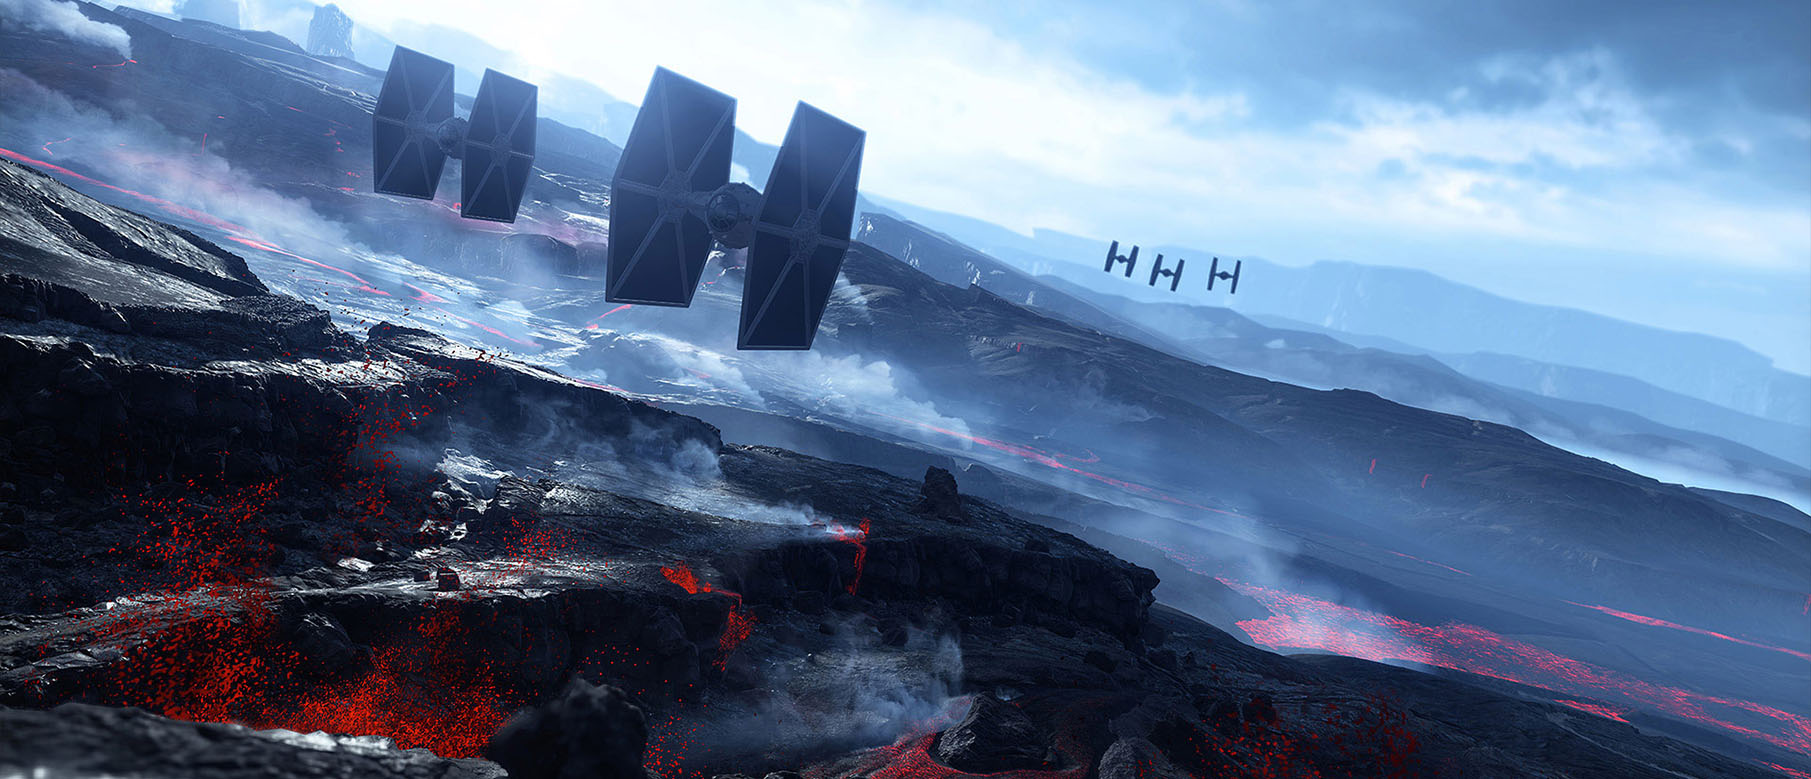 Изображение к Star Wars: Battlefront в 4K@60FPS на GPU от AMD